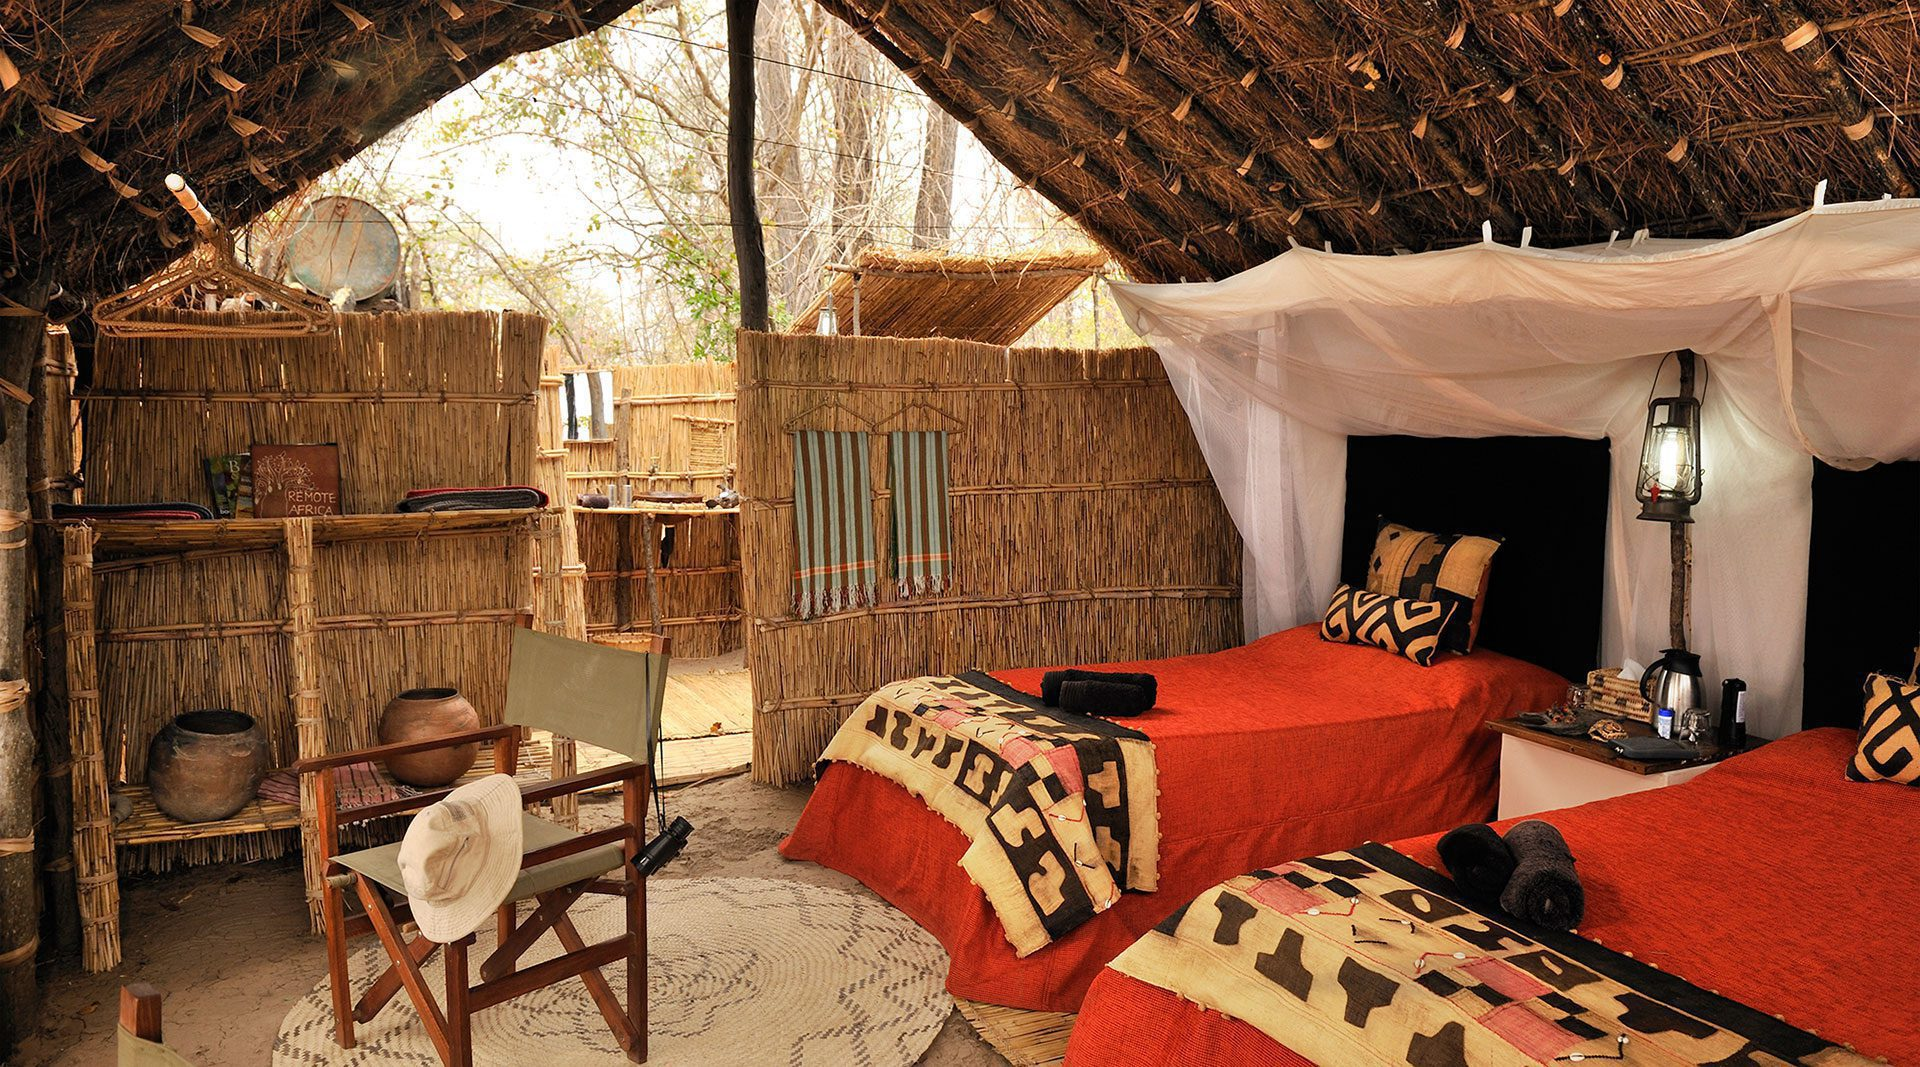 guest room in Mwaleshi Camp on remote Zambia safari